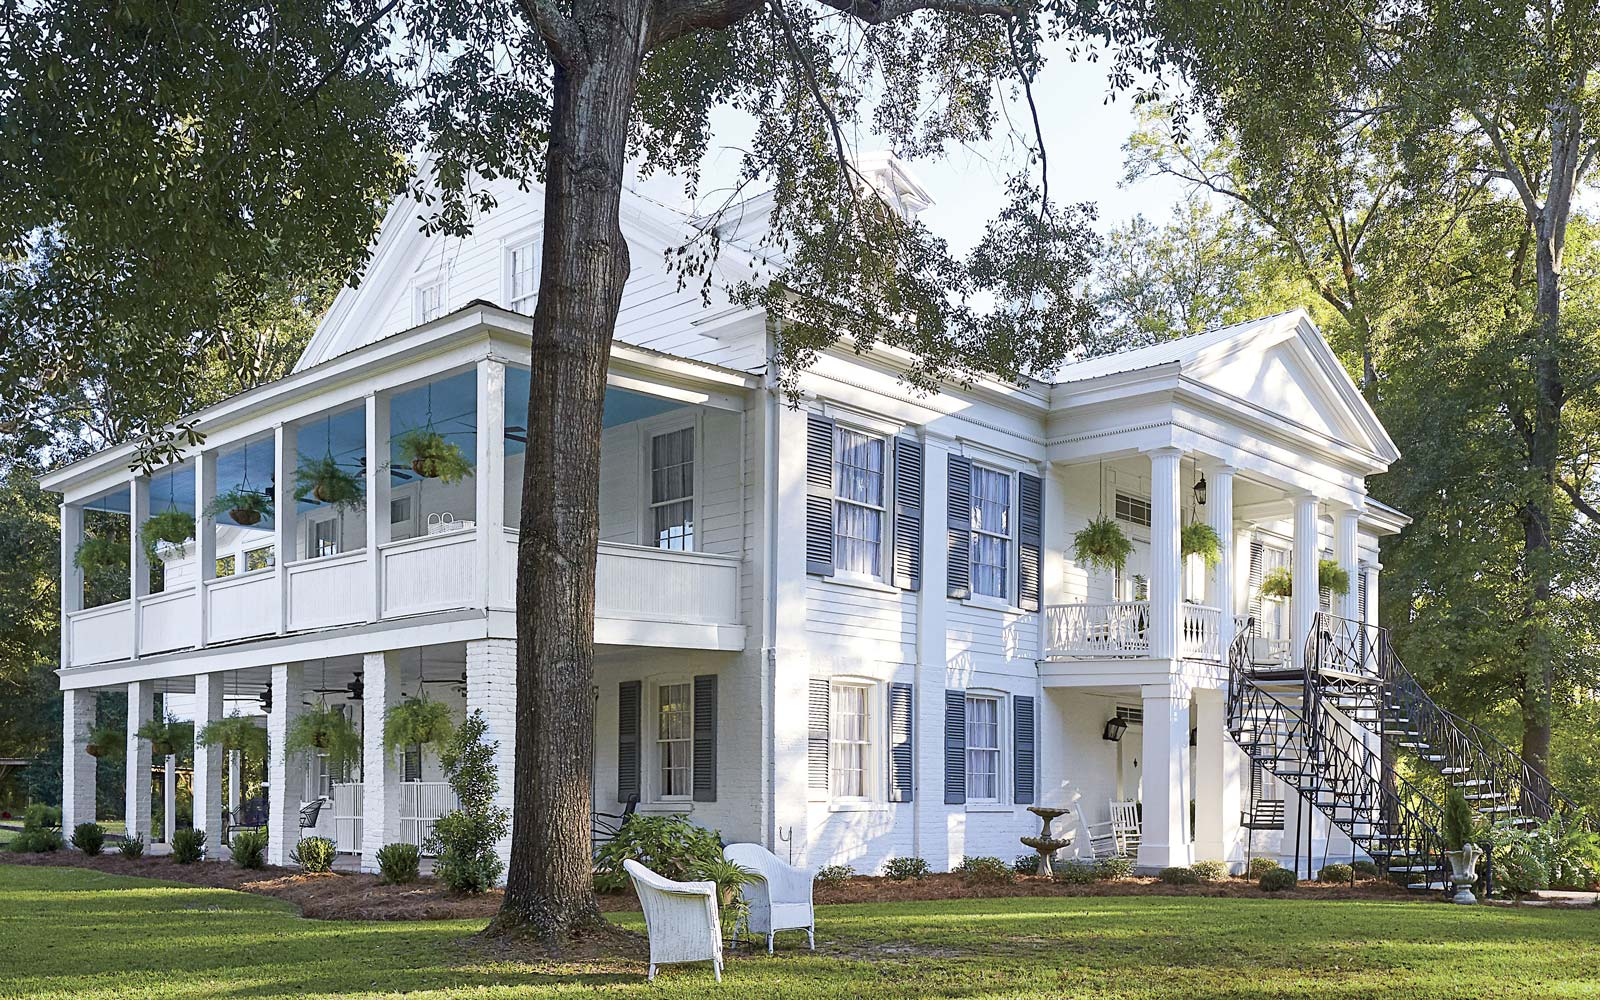 This 22-year-old Restored Her Family's 1832 Home in Alabama — and Now You Can Stay in It